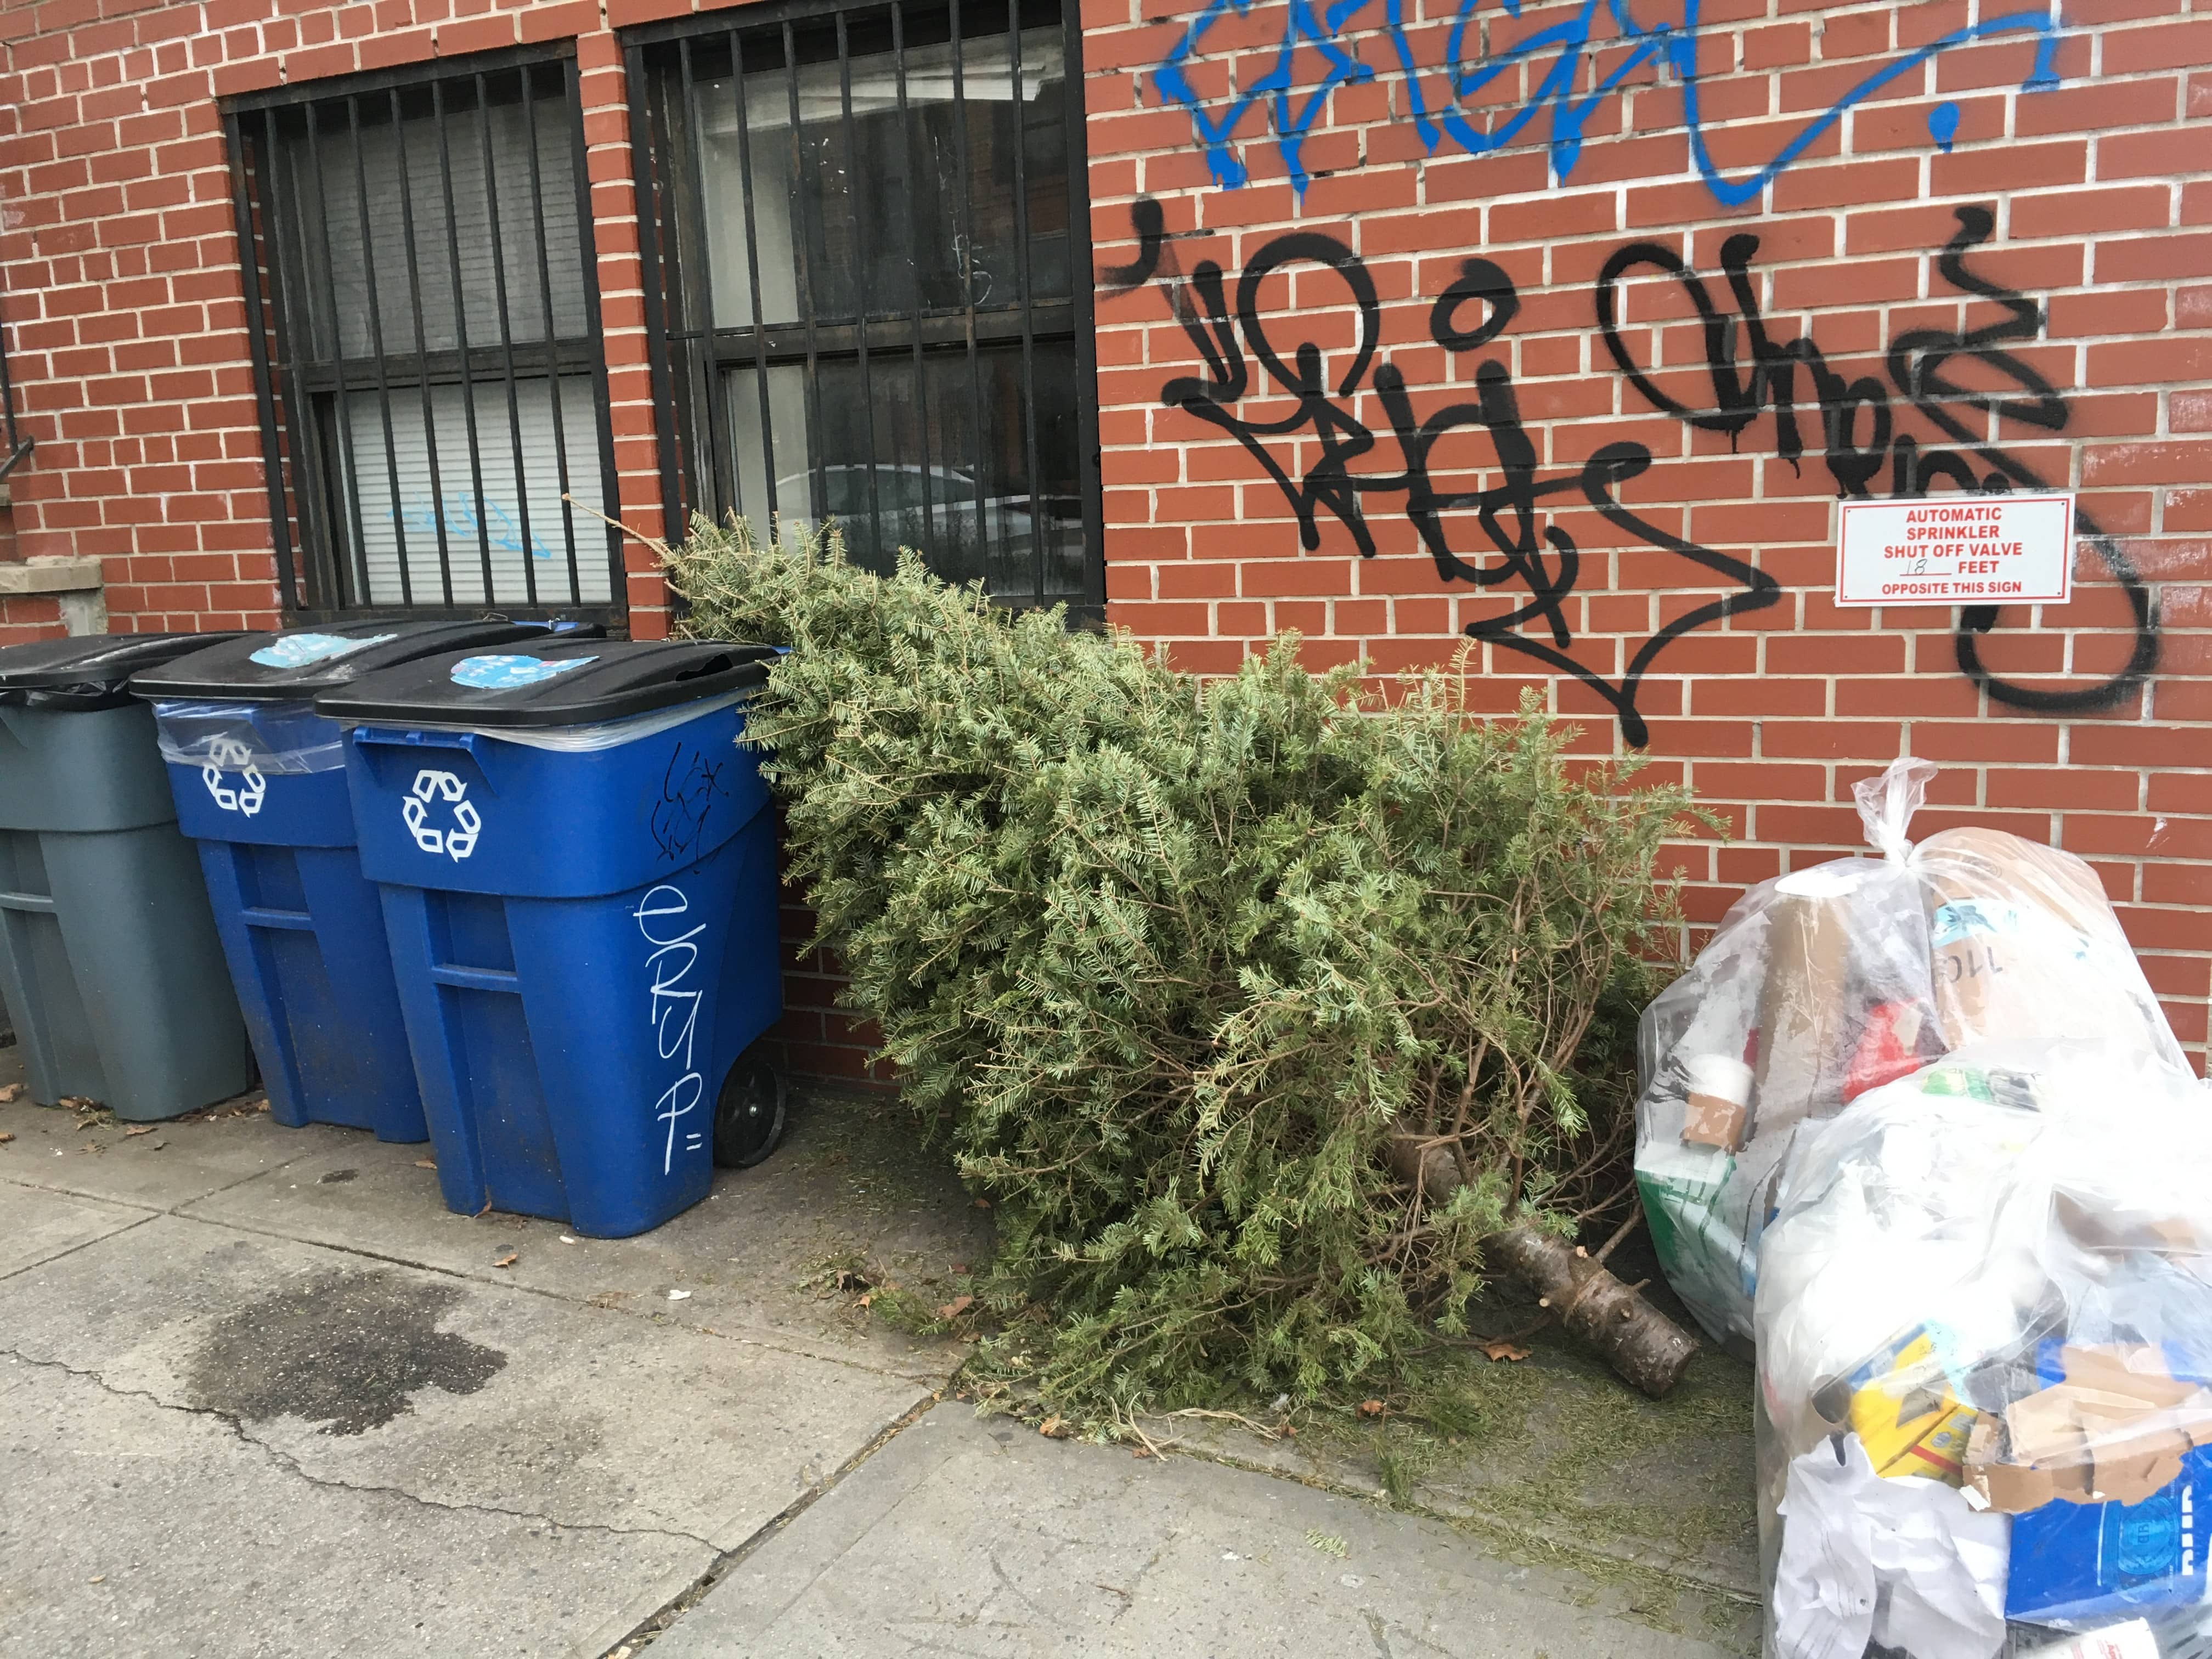 2020 Dispise Of Christmas Tree Mulchfest 2020: Here's How to Dispose of that Christmas Tree   BKLYNER